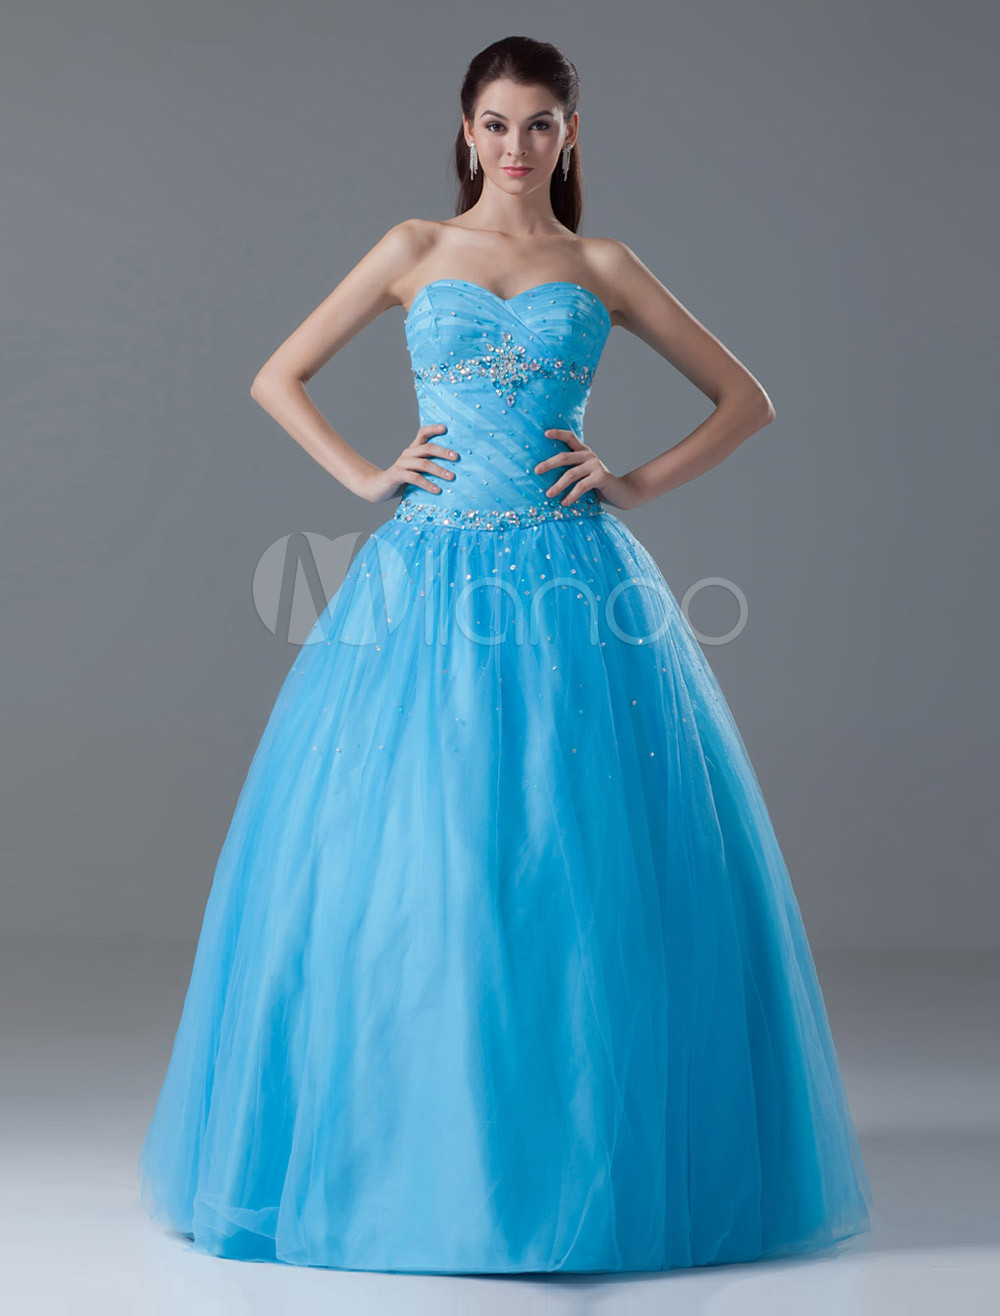 Blue Ball Gown Sweetheart Neck Beading Sleeveless Lace-up Tulle Graceful Ball Gown